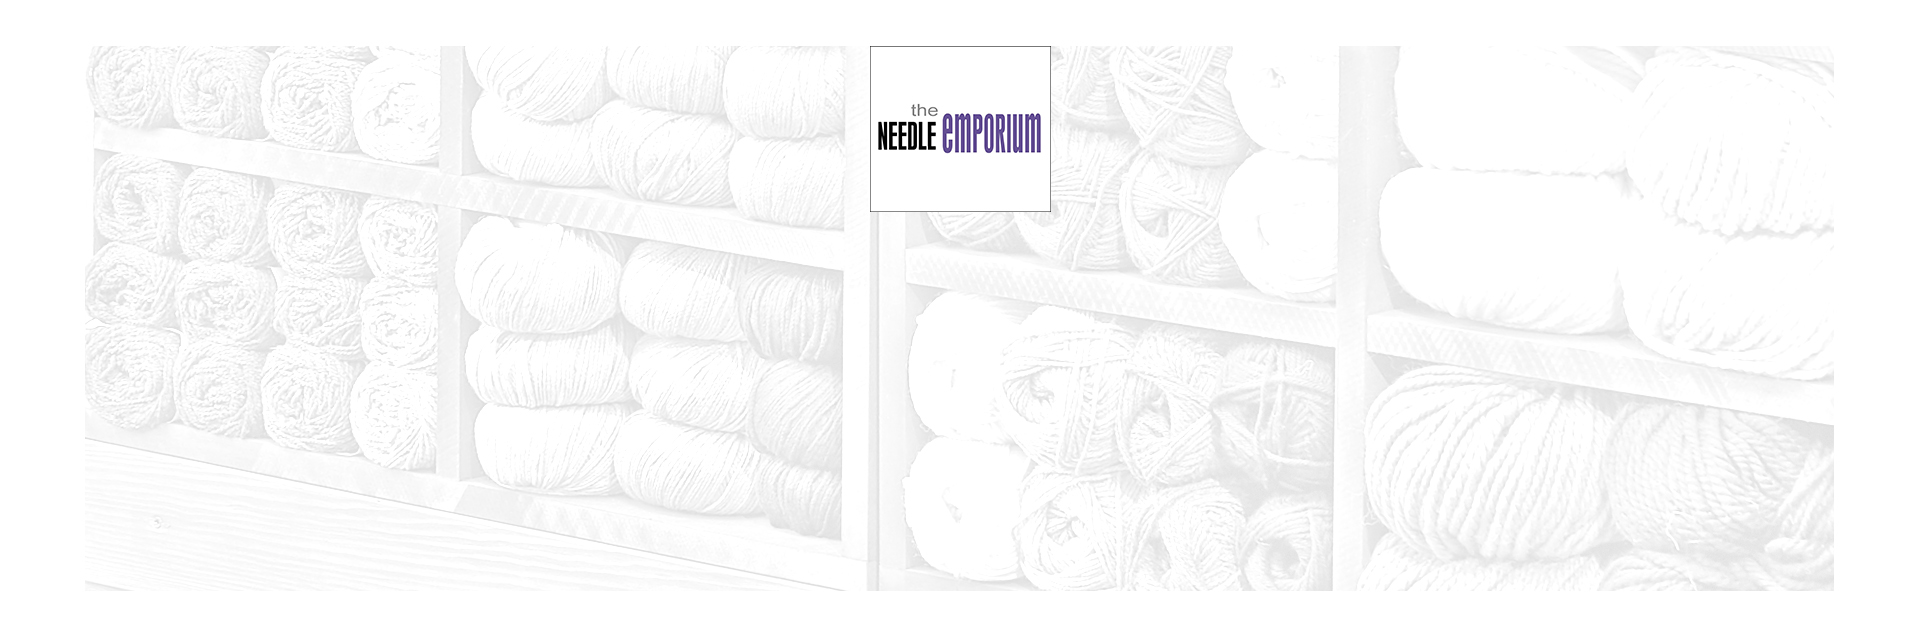 The Needle Emporium is located in a century home in historic Ancaster Ontario. We are in our 34th year of selling yarn. In addition to our bricks and mortar store we also run a thriving website and ship yarn across North America.